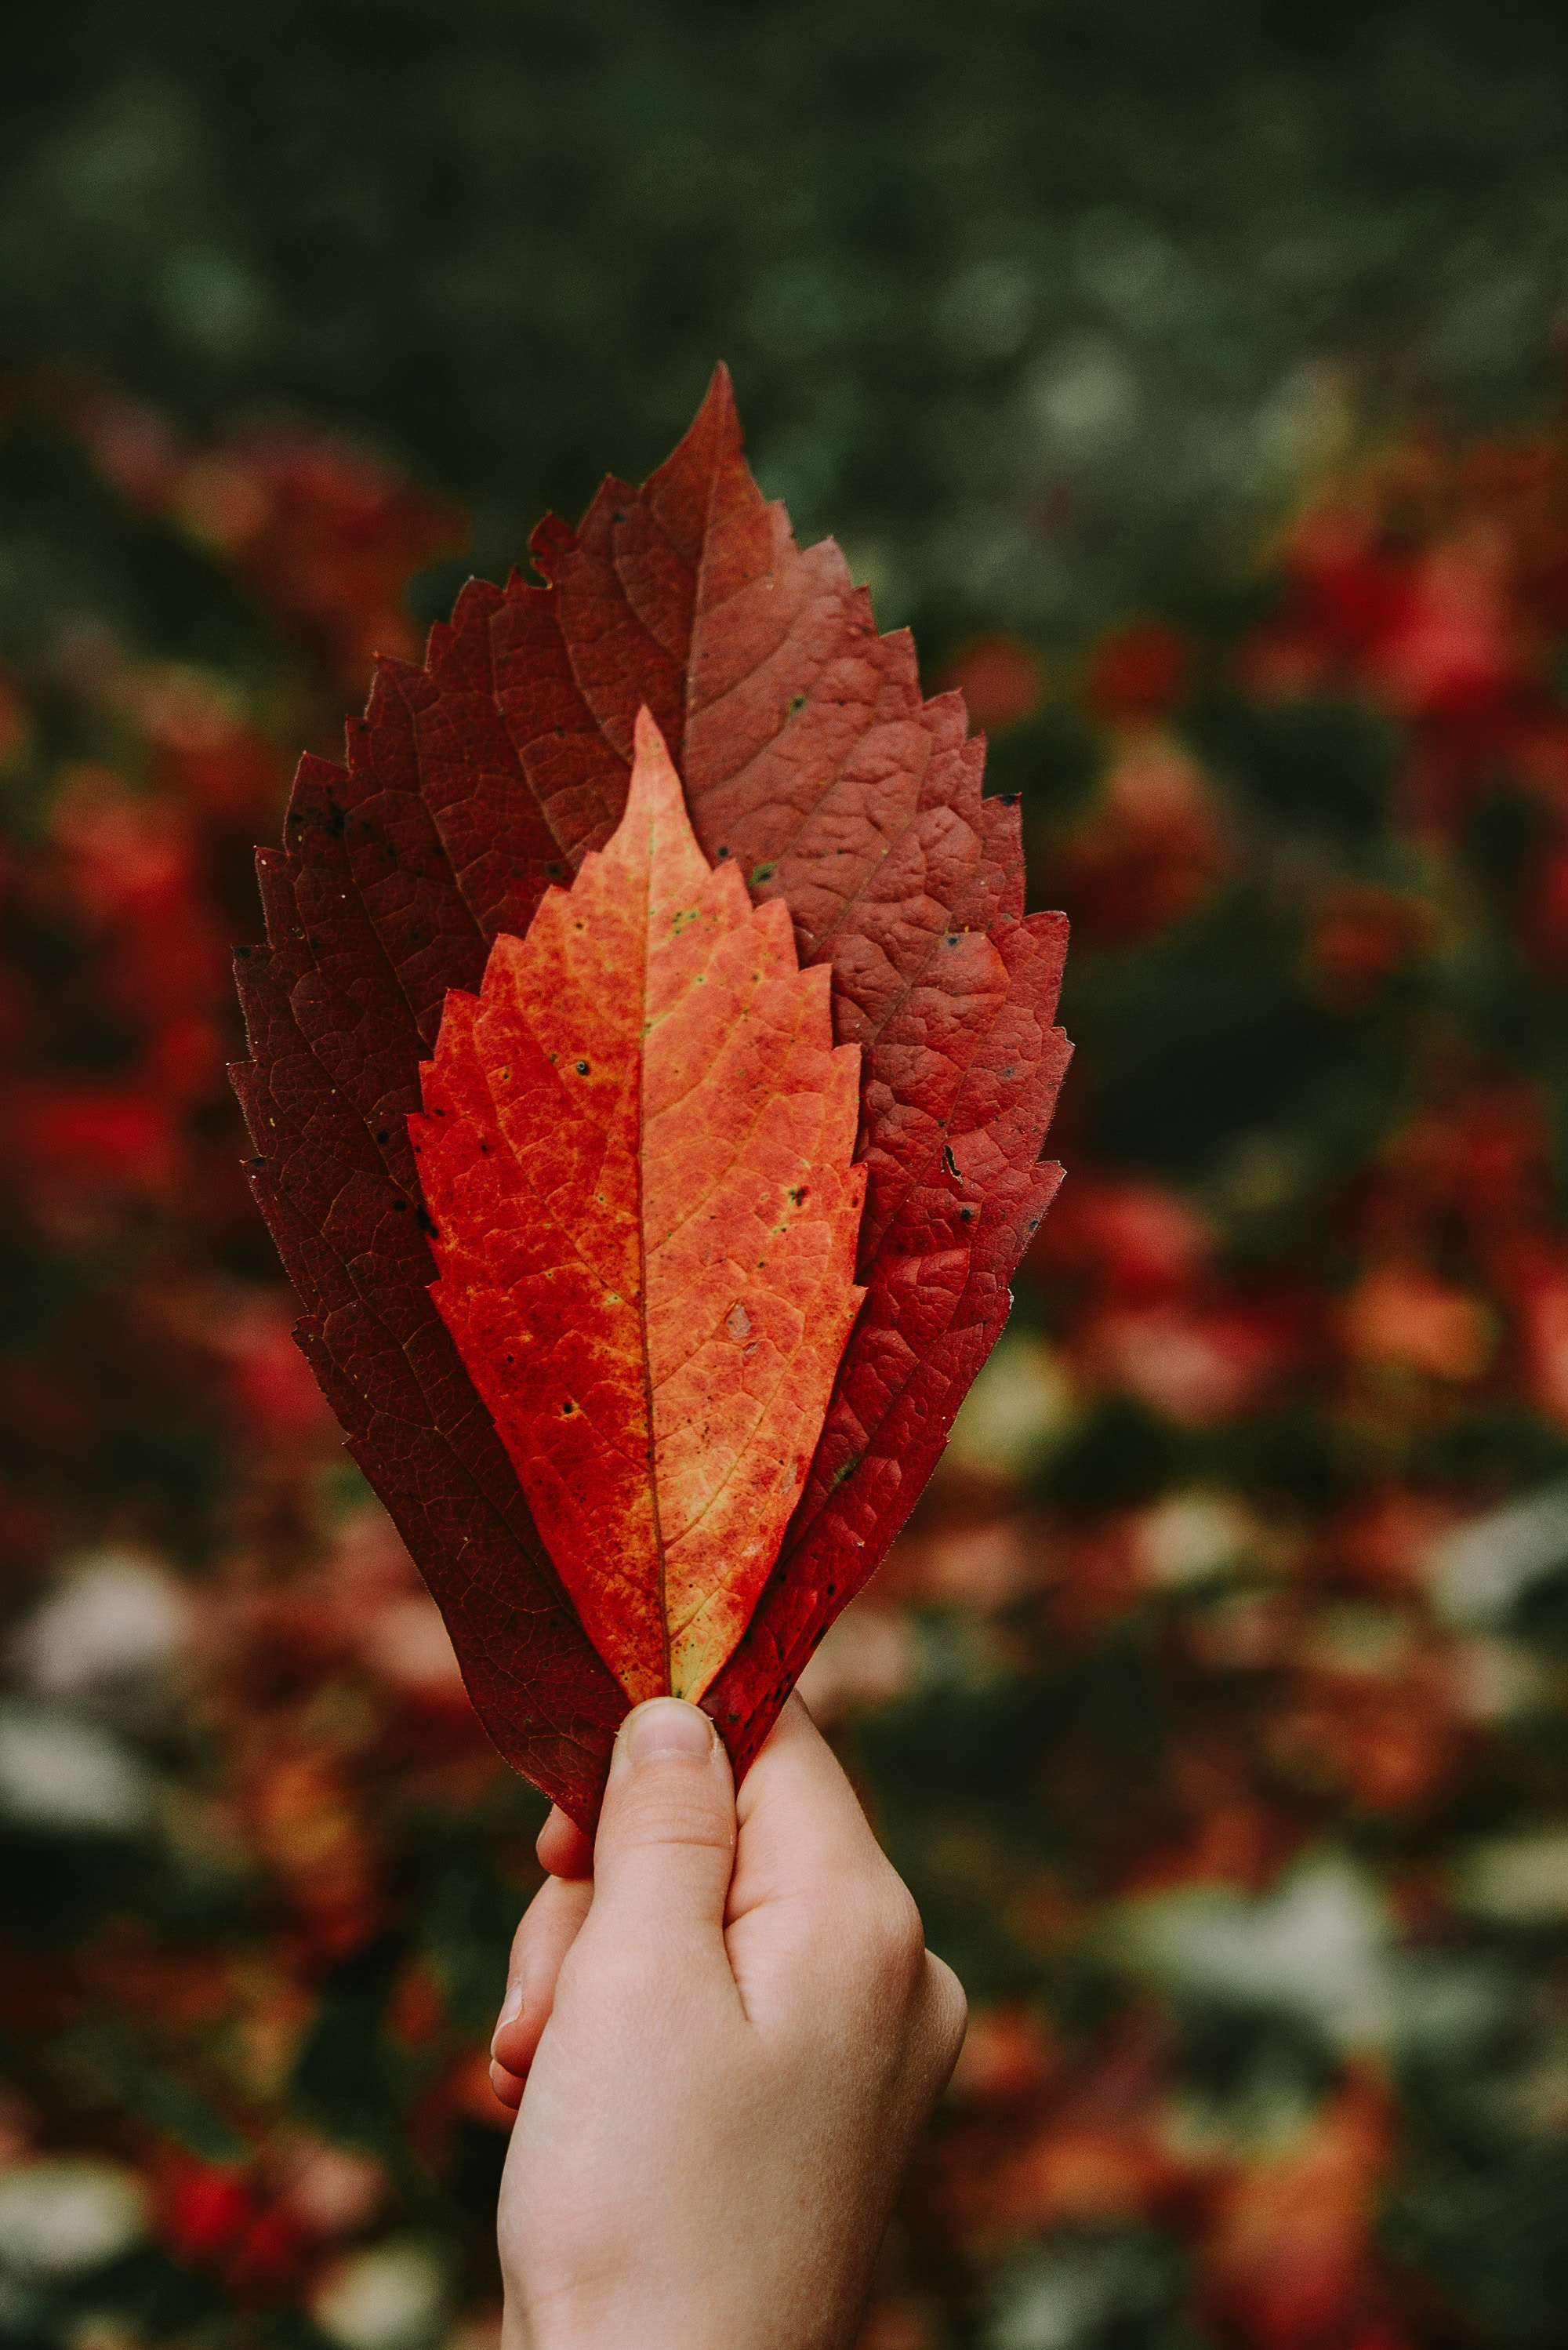 116257 download wallpaper Miscellanea, Miscellaneous, Leaves, Hand, Dry, Autumn screensavers and pictures for free